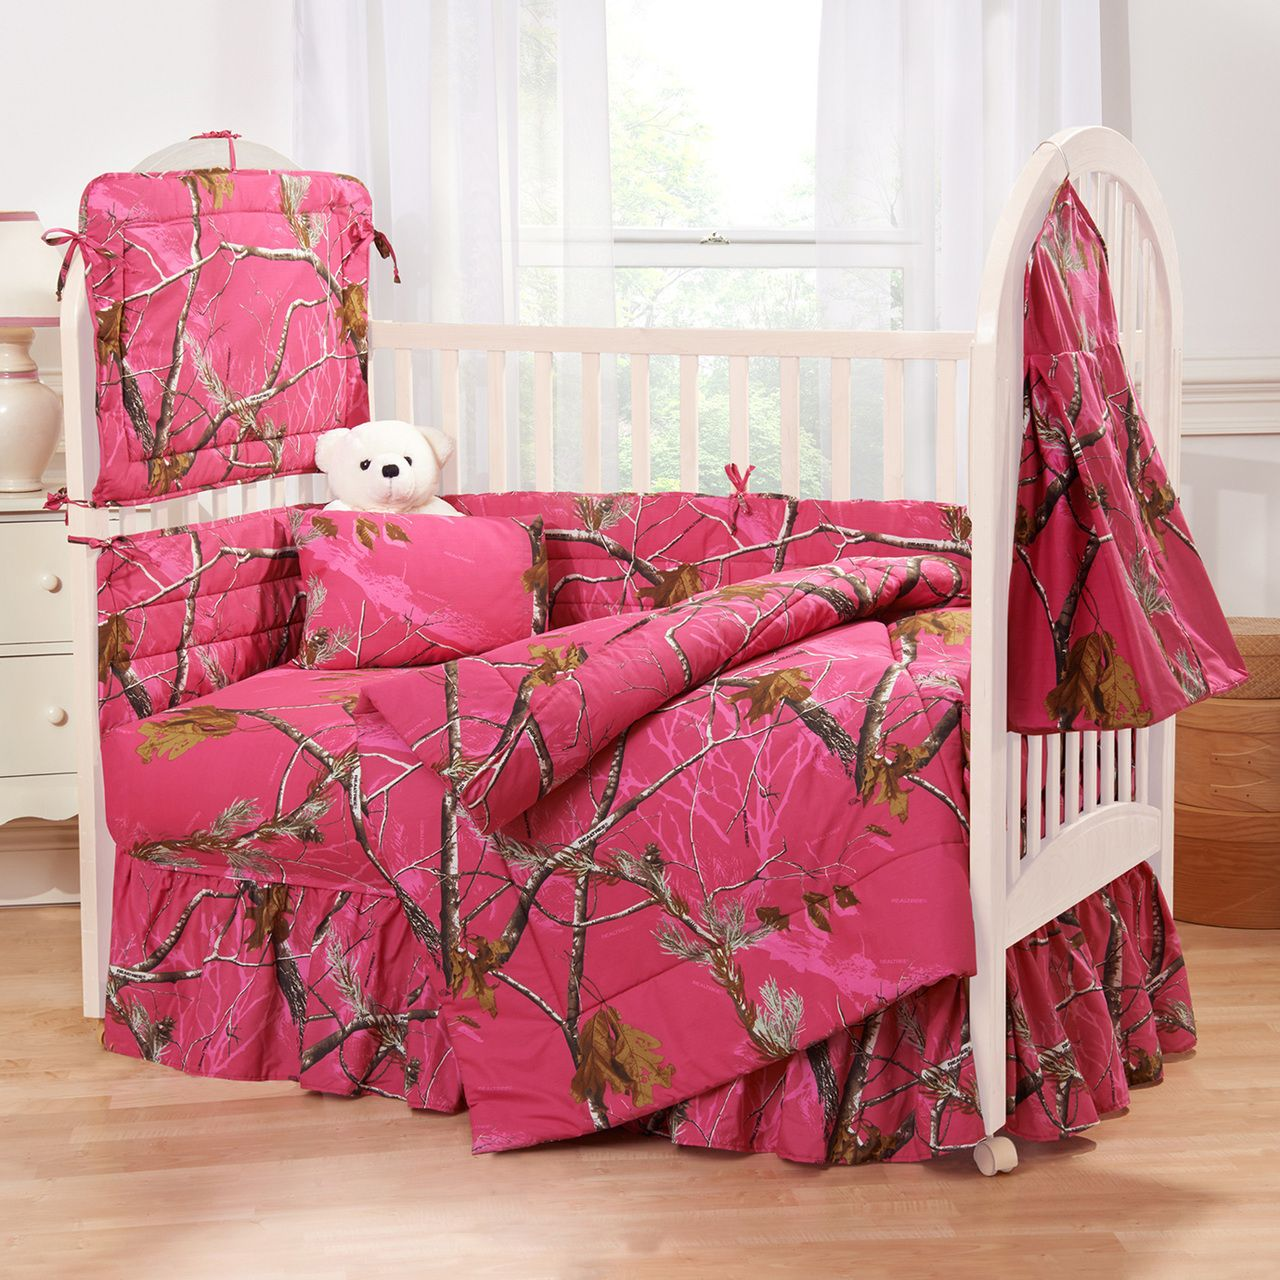 pretty pink camo bedding for baby - Pink Camo Bedding